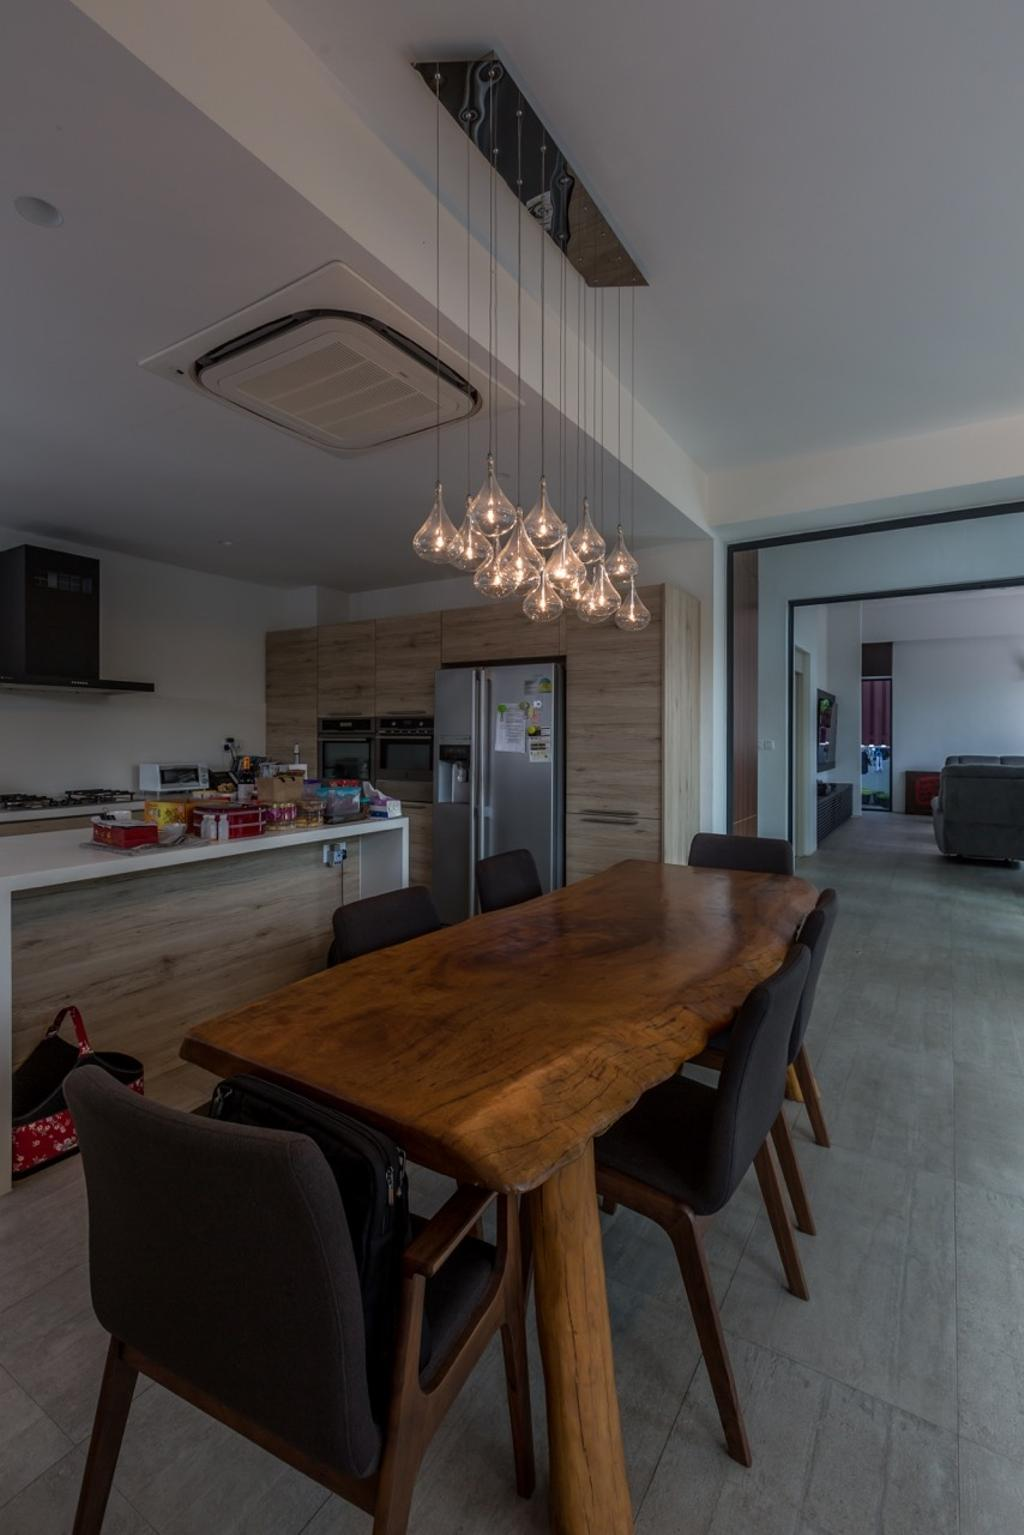 Contemporary, Landed, Dining Room, Minaret Walk, Architect, EZRA Architects, Hanging Lights, Wooden Table, Brown Table, Dining Table, Black Chairs, Cushioned Chairs, Wooden Laminate, Couch, Furniture, Plywood, Wood, Chandelier, Lamp, Indoors, Interior Design, Room, Chair